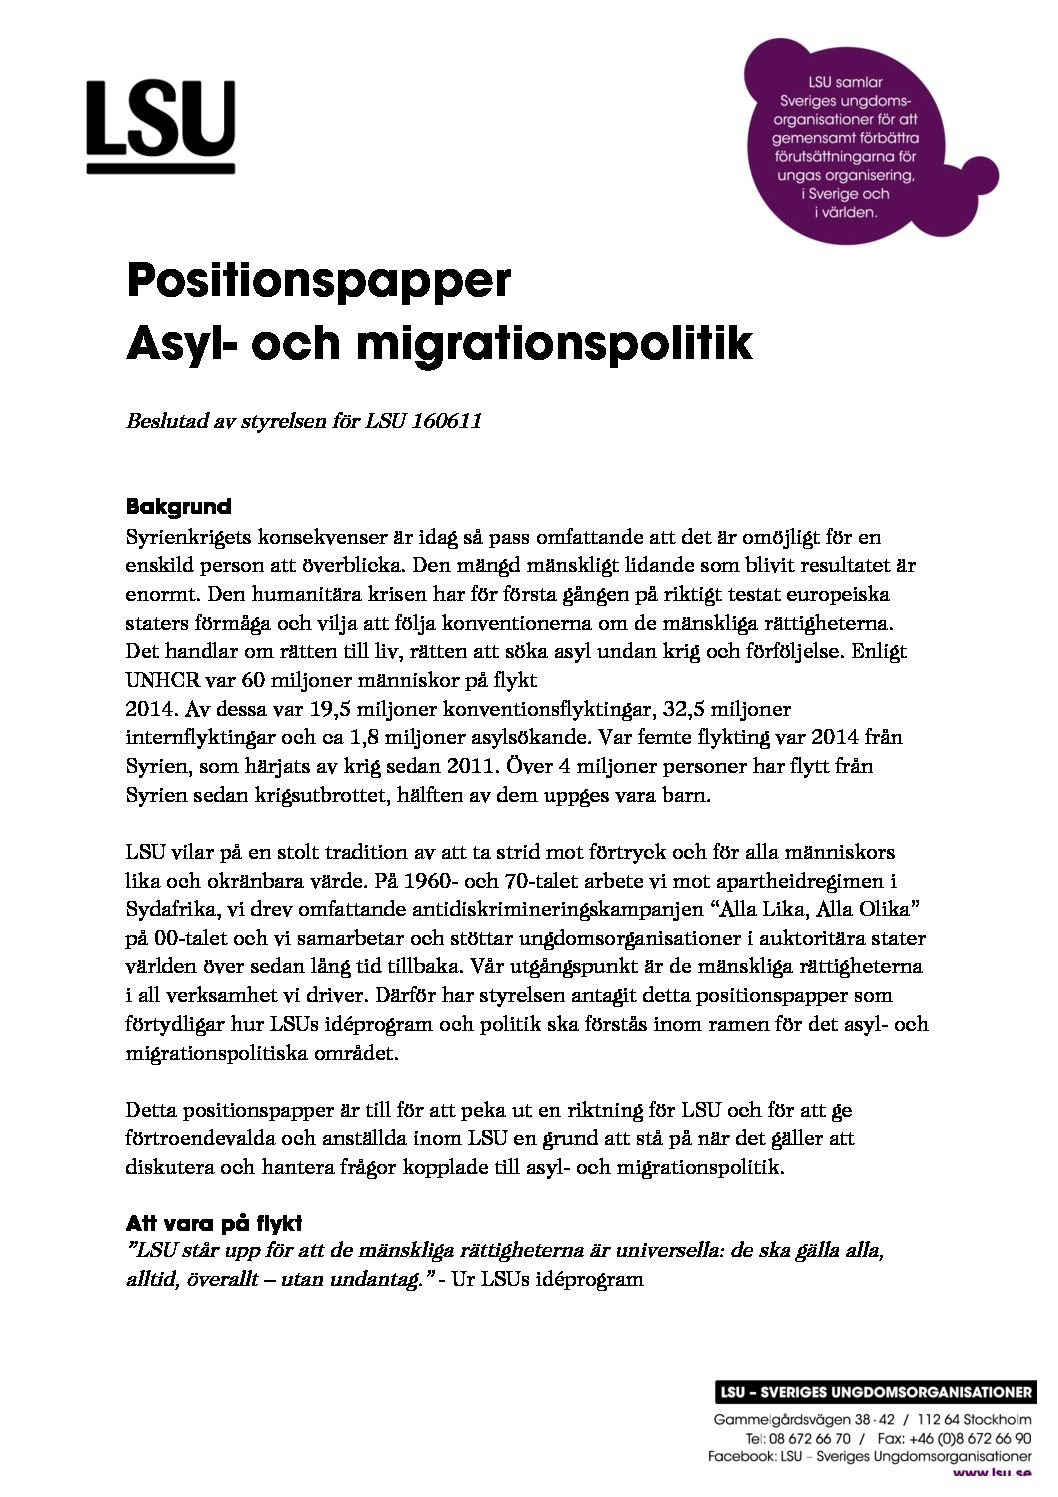 Positionspapper asyl- och migrationspolitik